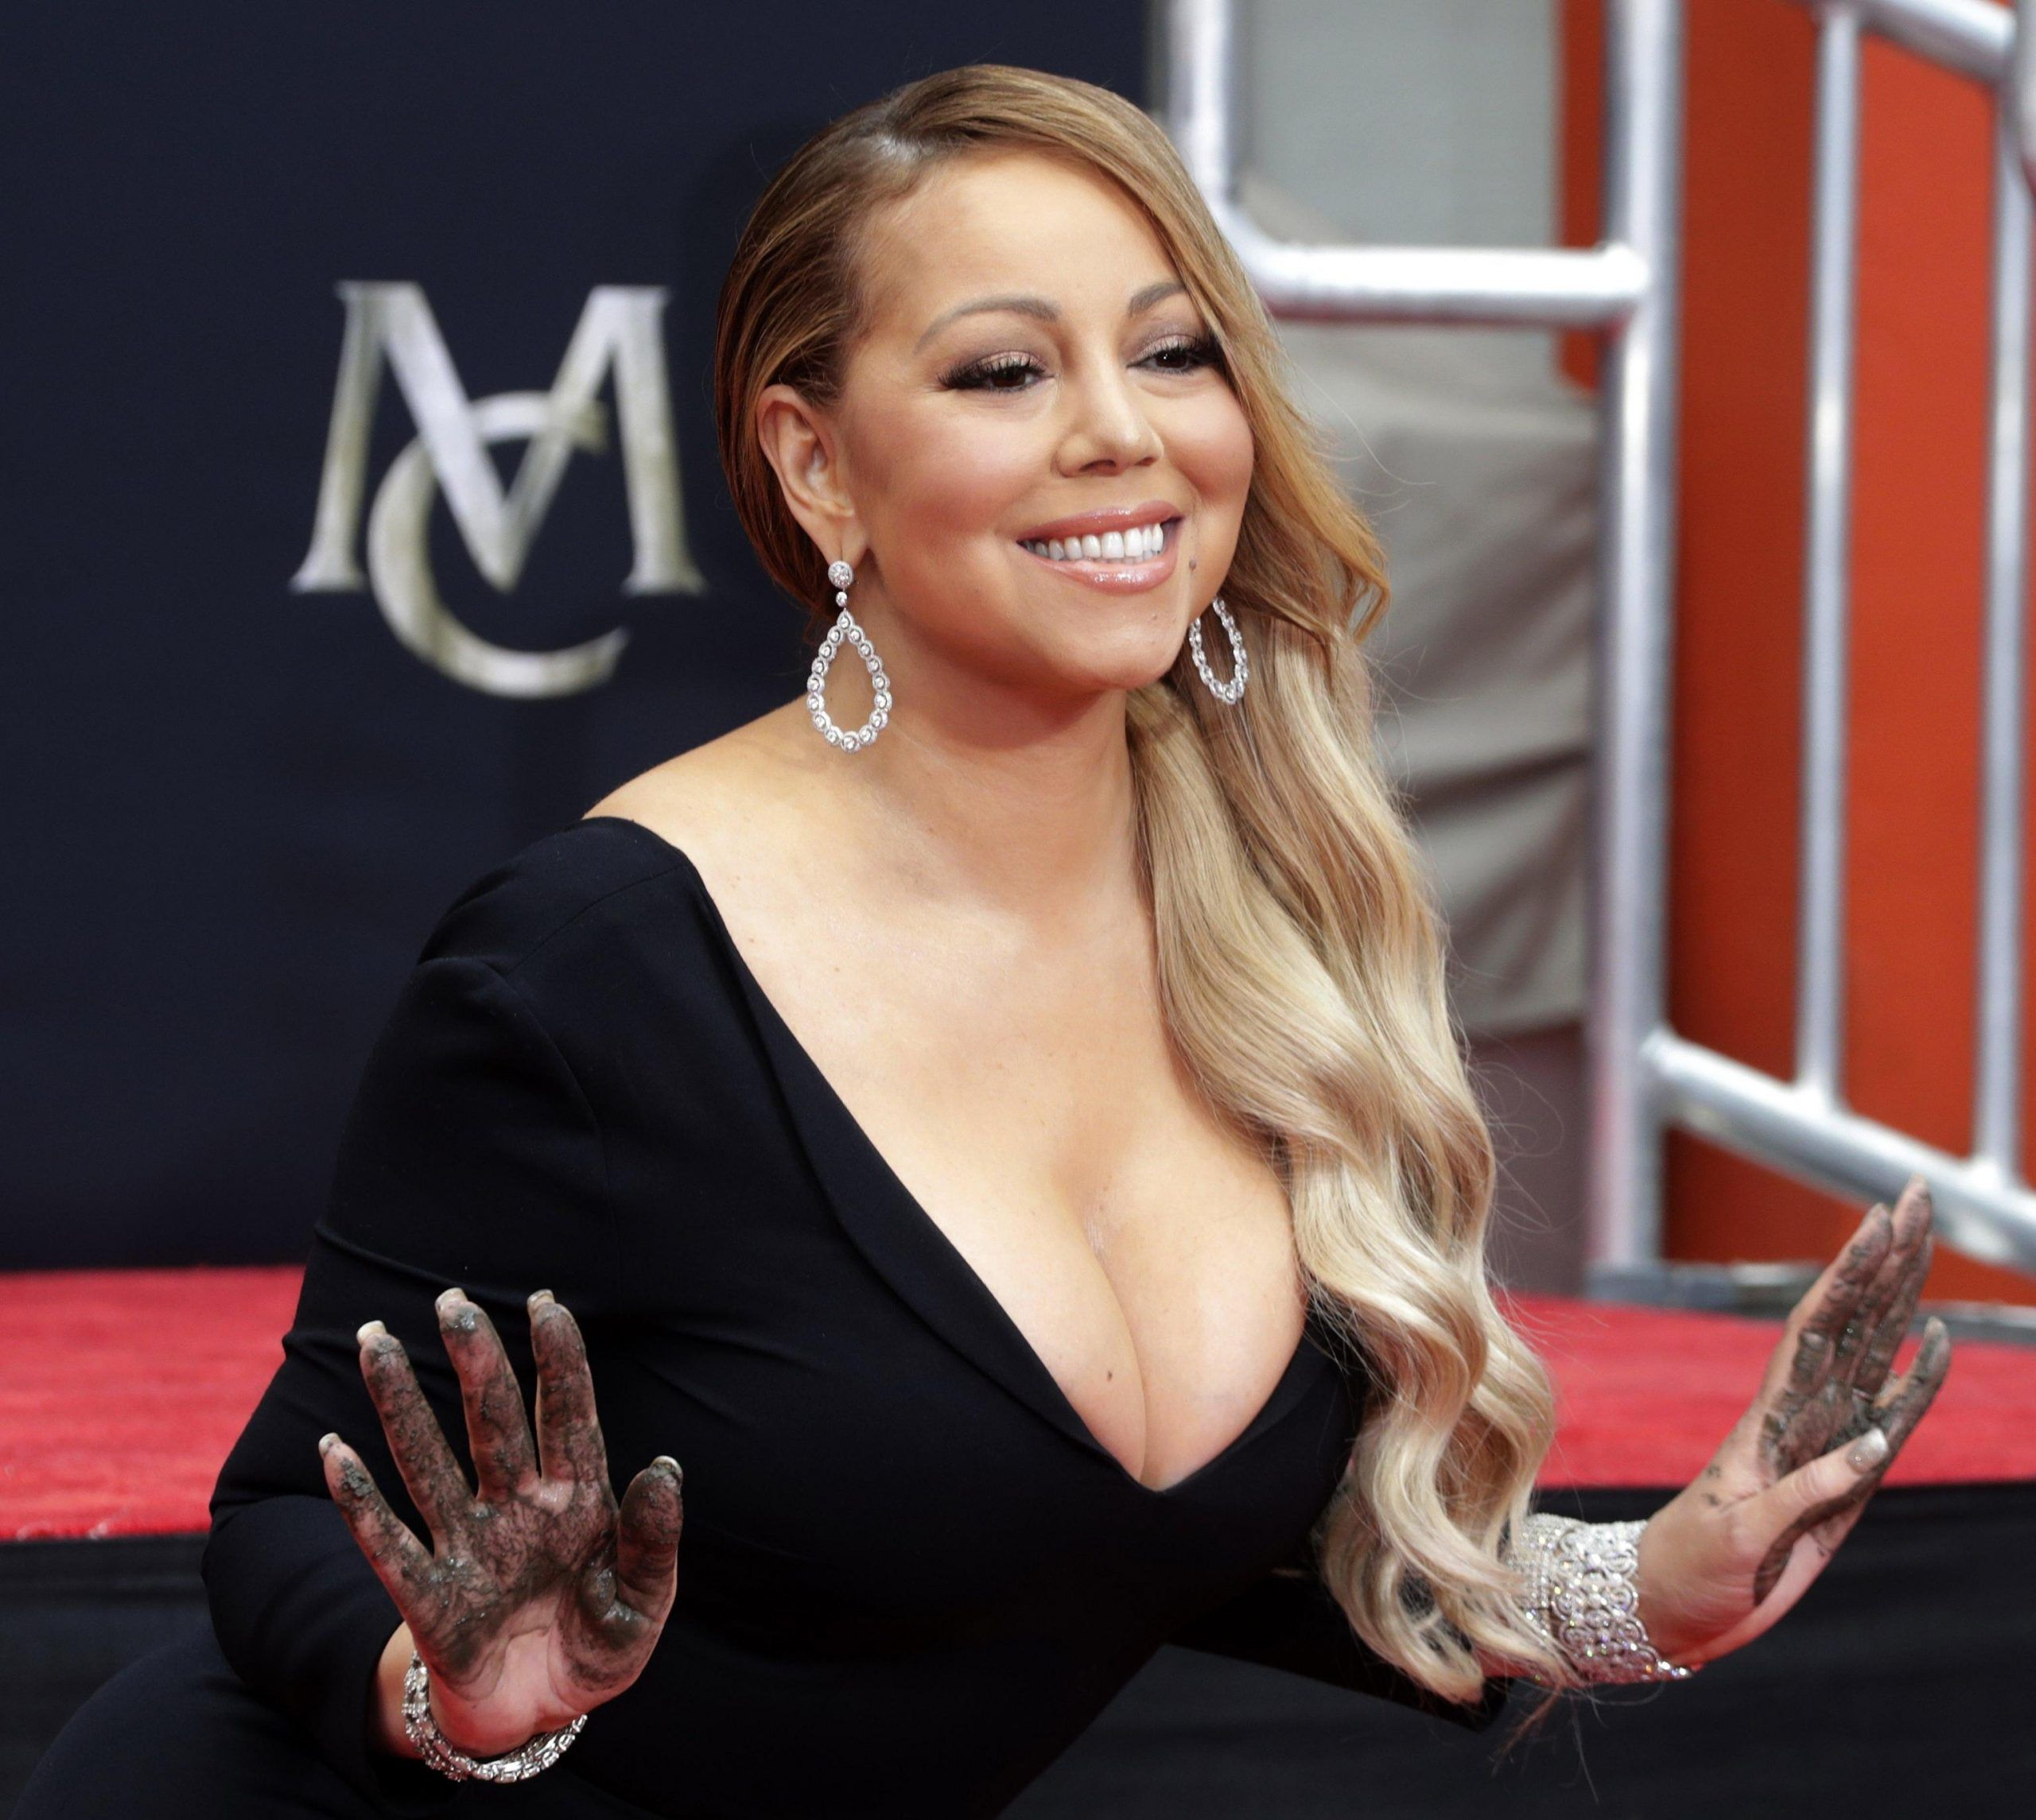 Mariah Carey honored with Hollywood handprint ceremony